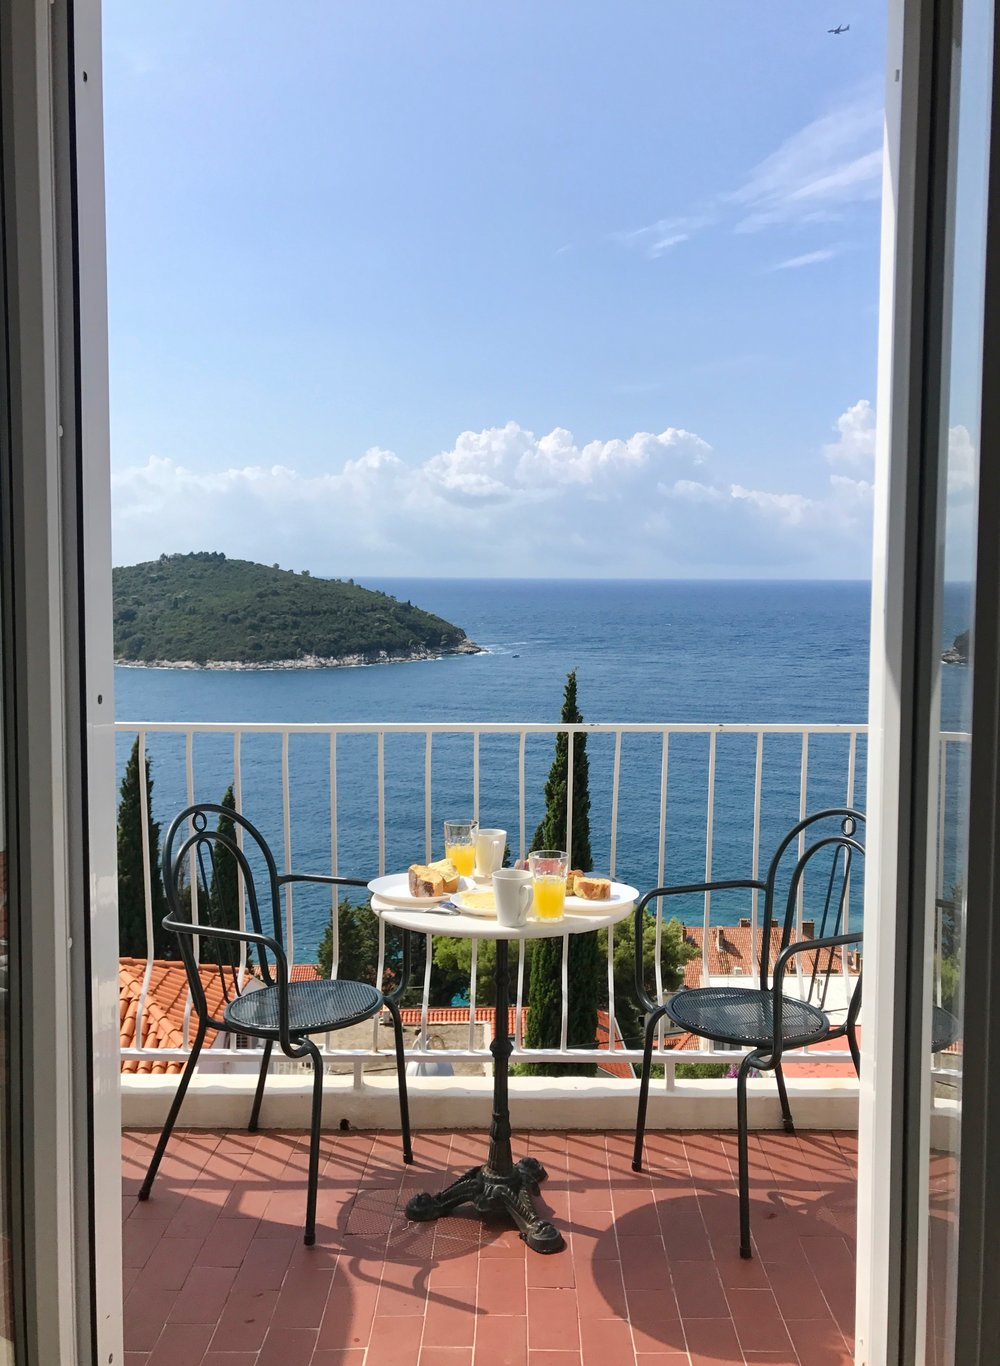 Daily breakfast views. Lokrum Island in the background